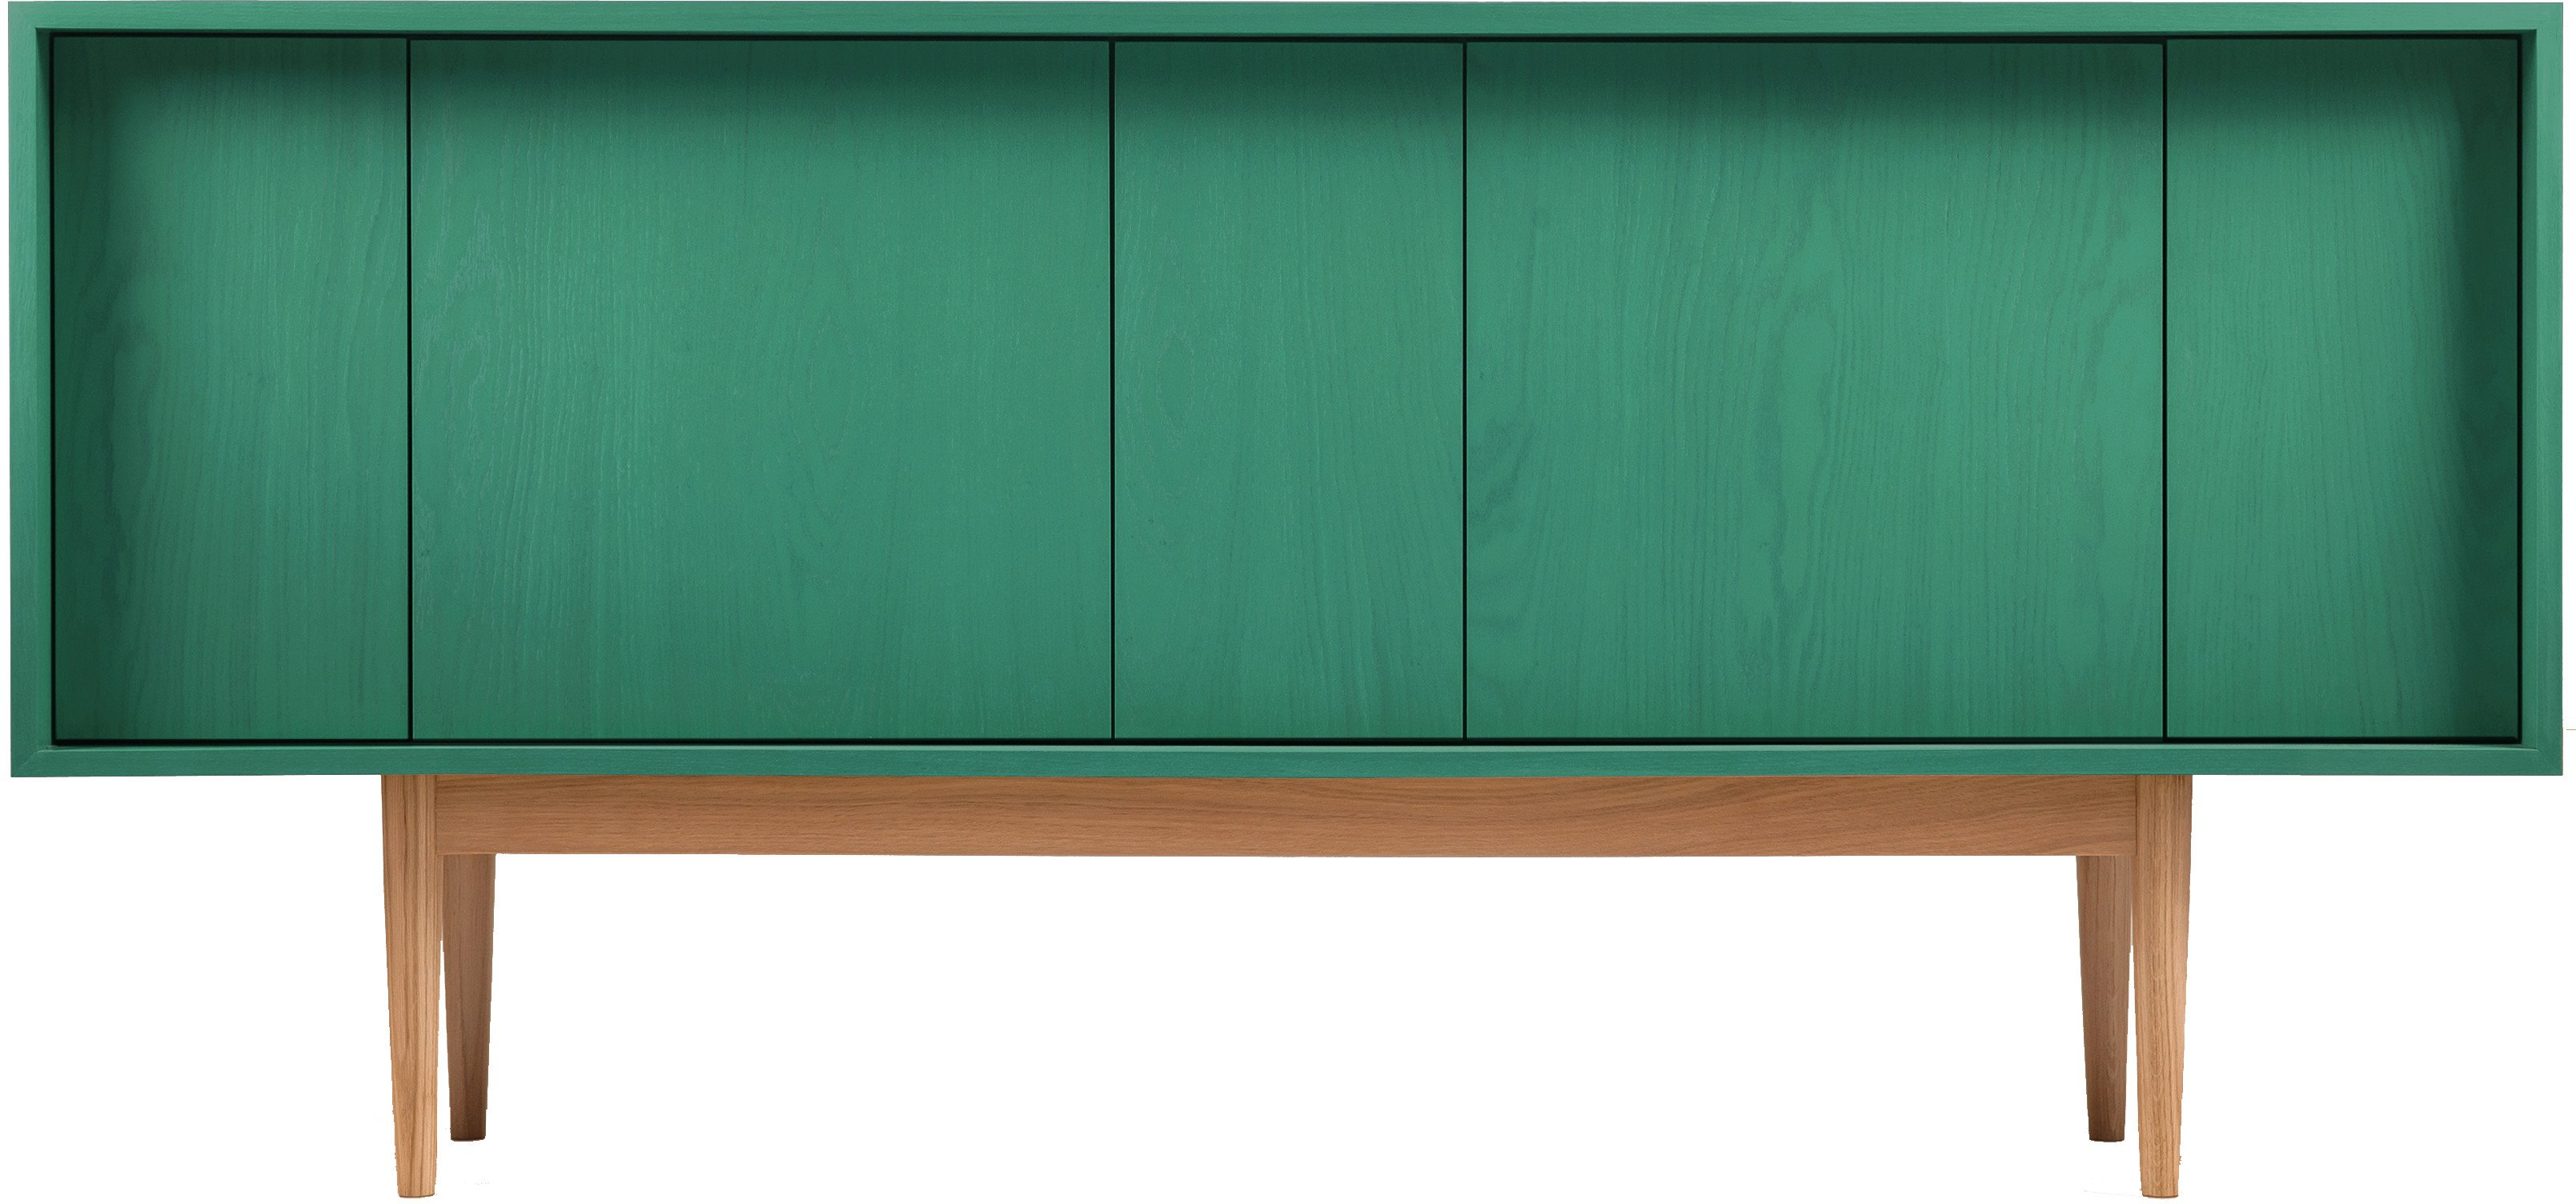 XOXO Kiss Sideboard L High Green by M. Kobiela for Phormy - 514599 - photo